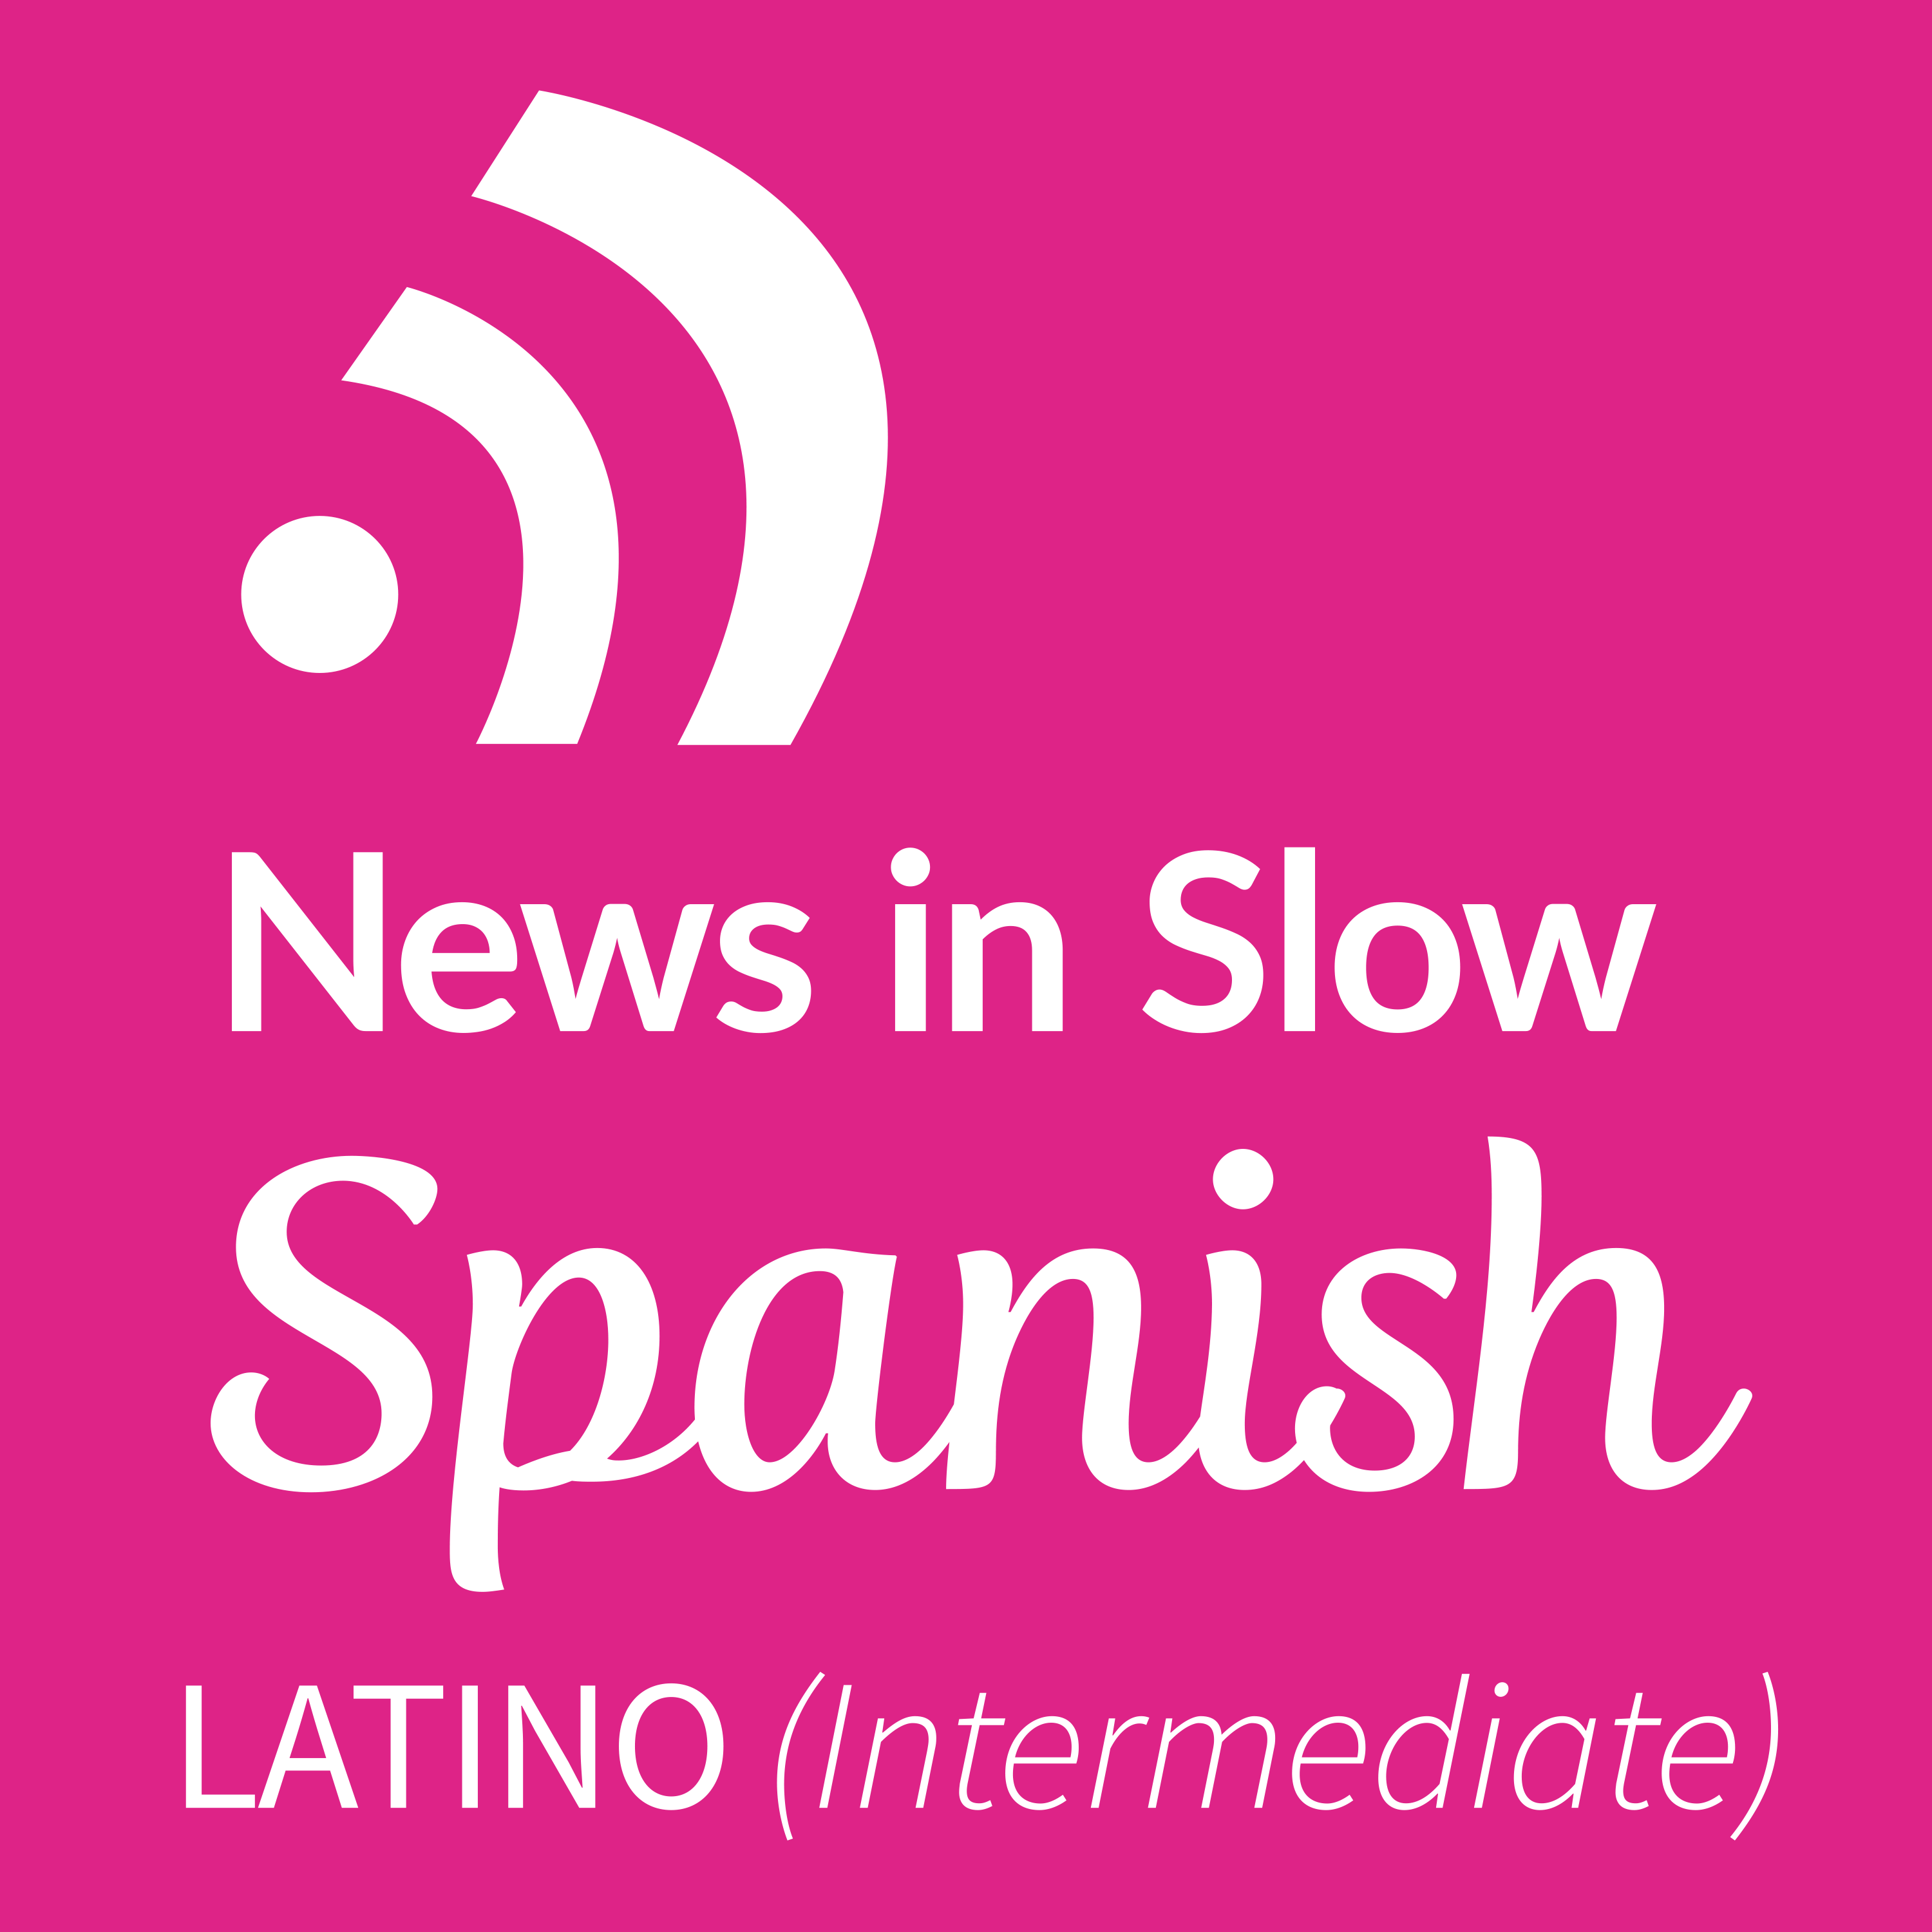 News in Slow Spanish Latino - # 139 - Spanish grammar, news and expressions